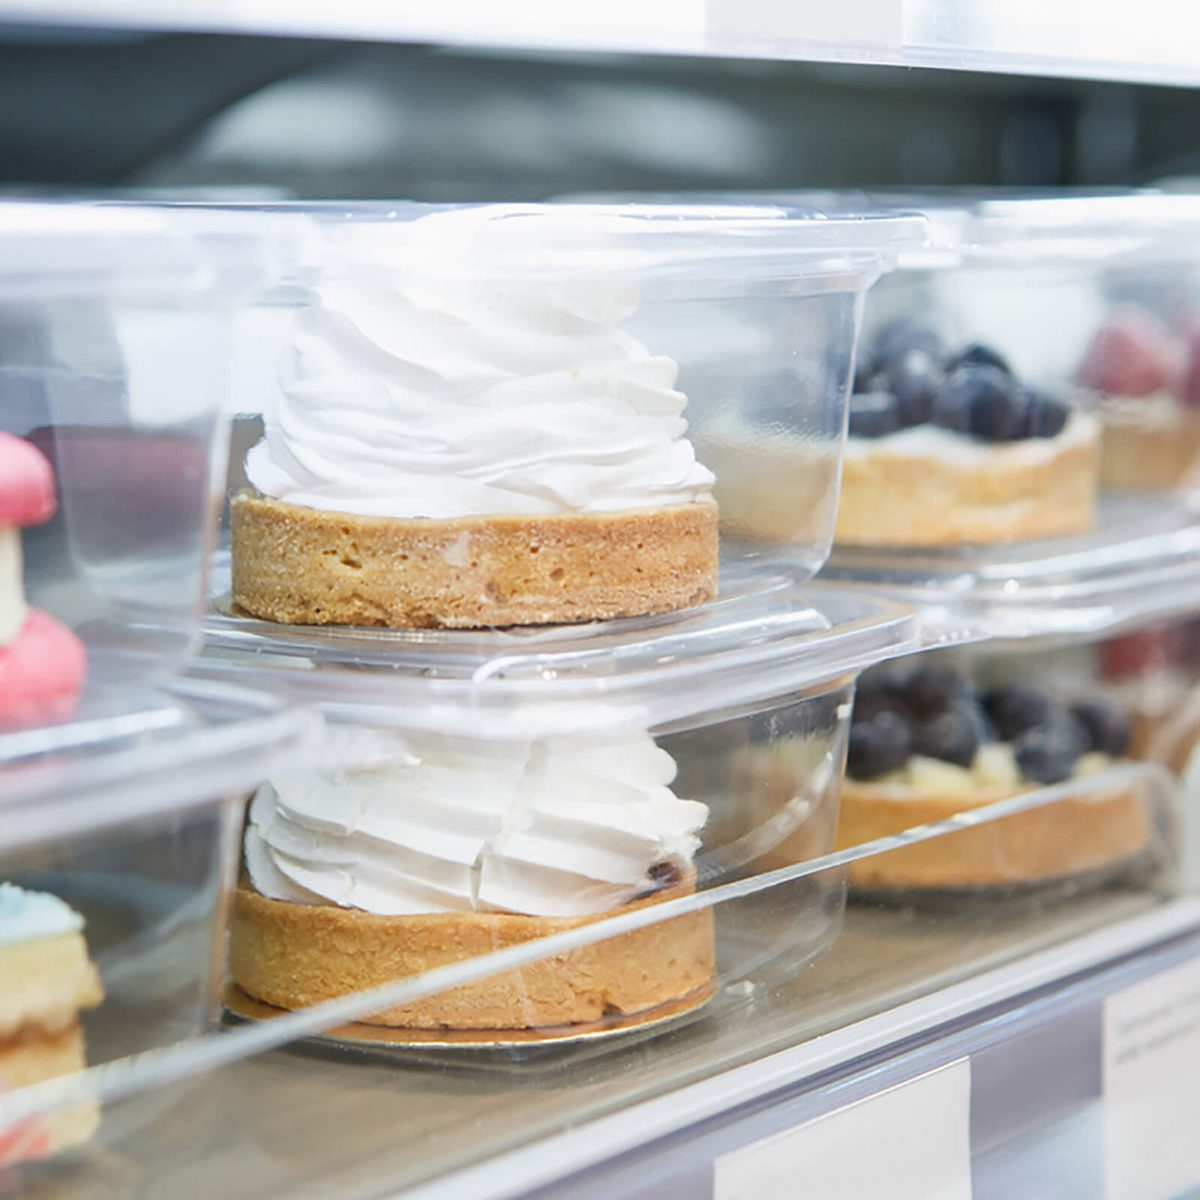 Delicious little cake in refrigerator packed in plastic container.Fresh sweet pastry for coffeebreak.Creamy cakes in freezer.Eat delicious bakery product with cream,sugar.Frozen cup cakes in container; Shutterstock ID 558665518